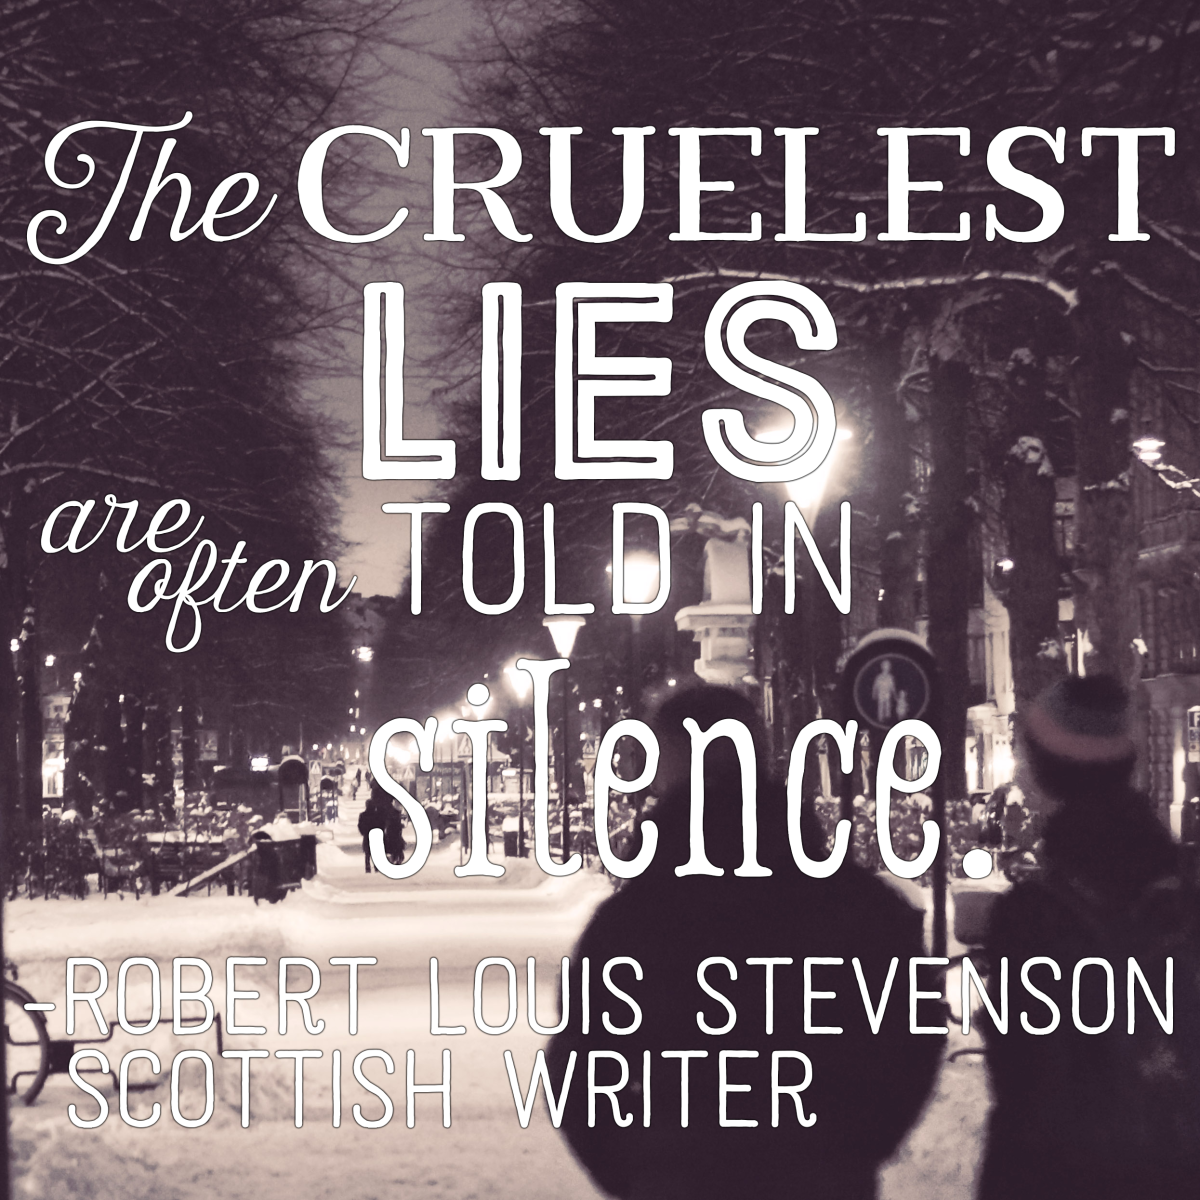 """The cruelest lies are often told in silence."" - Robert Louis Stevenson, Scottish writer"